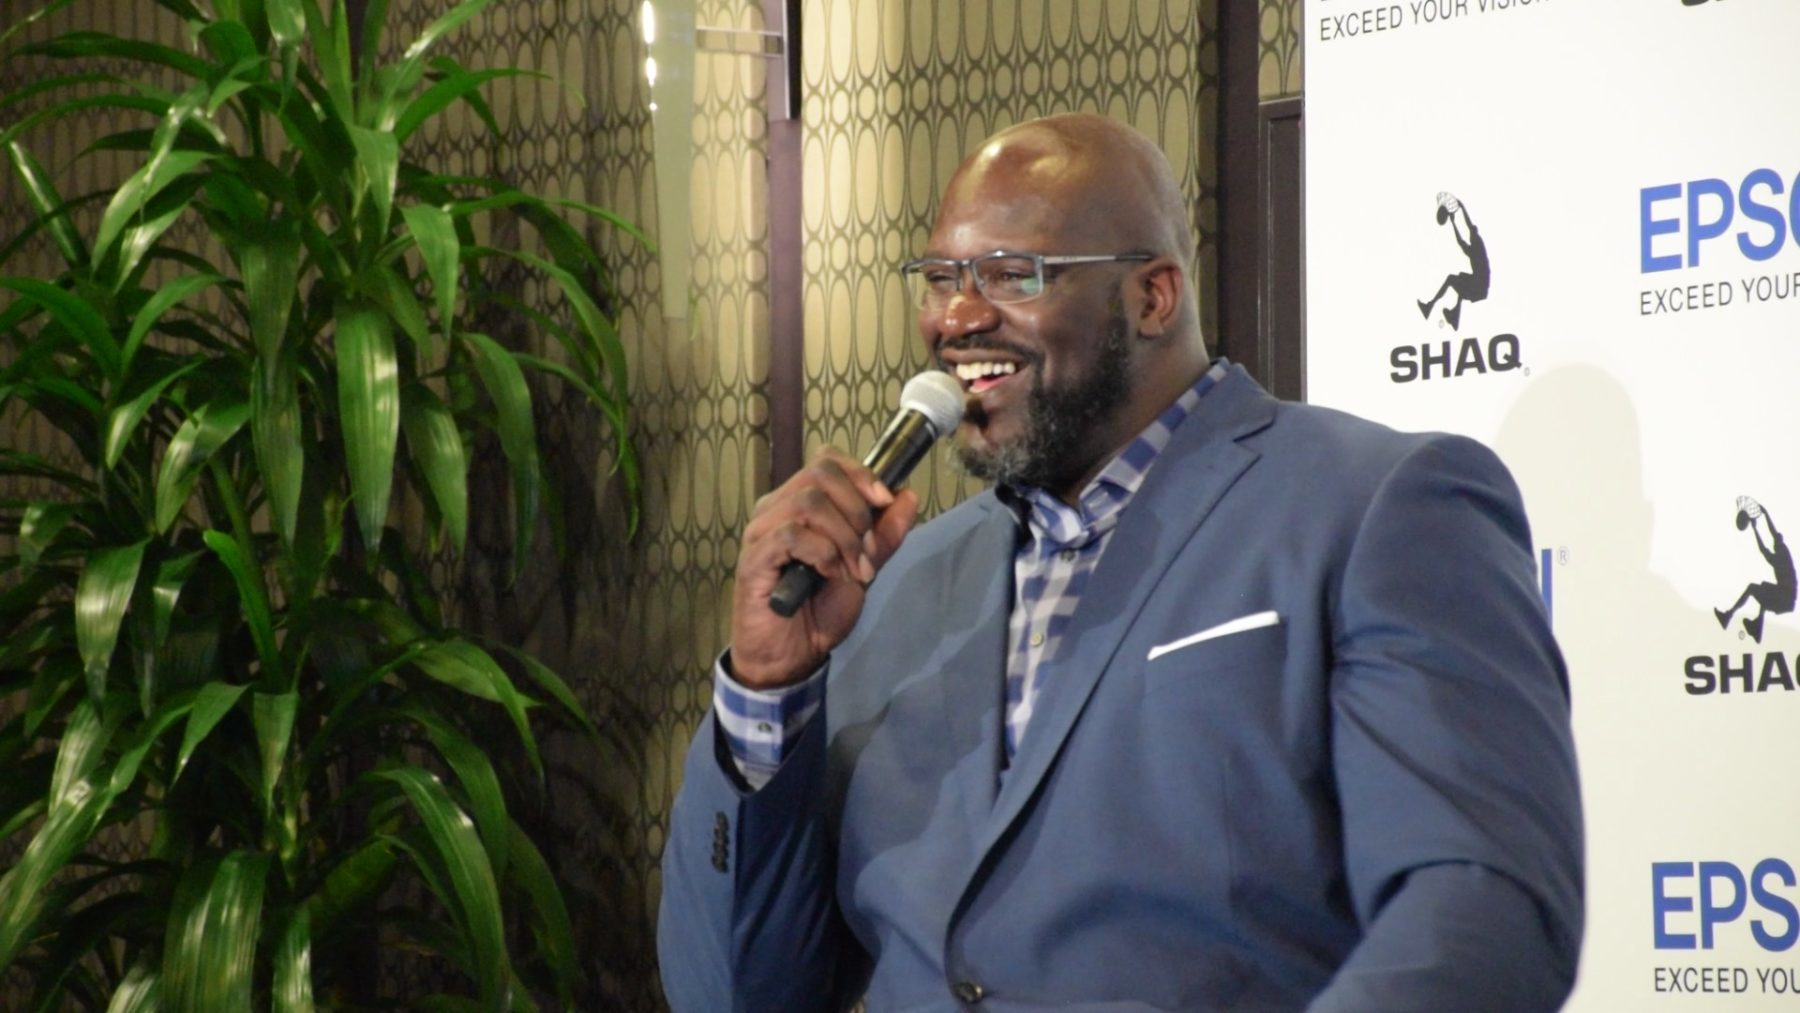 Shaquille O'Neal speaks at an event in Los Angeles last month, and has become a spokesperson for health and other causes he's passionate about. (Photo by Anushka Hauerstock for Direct Relief)